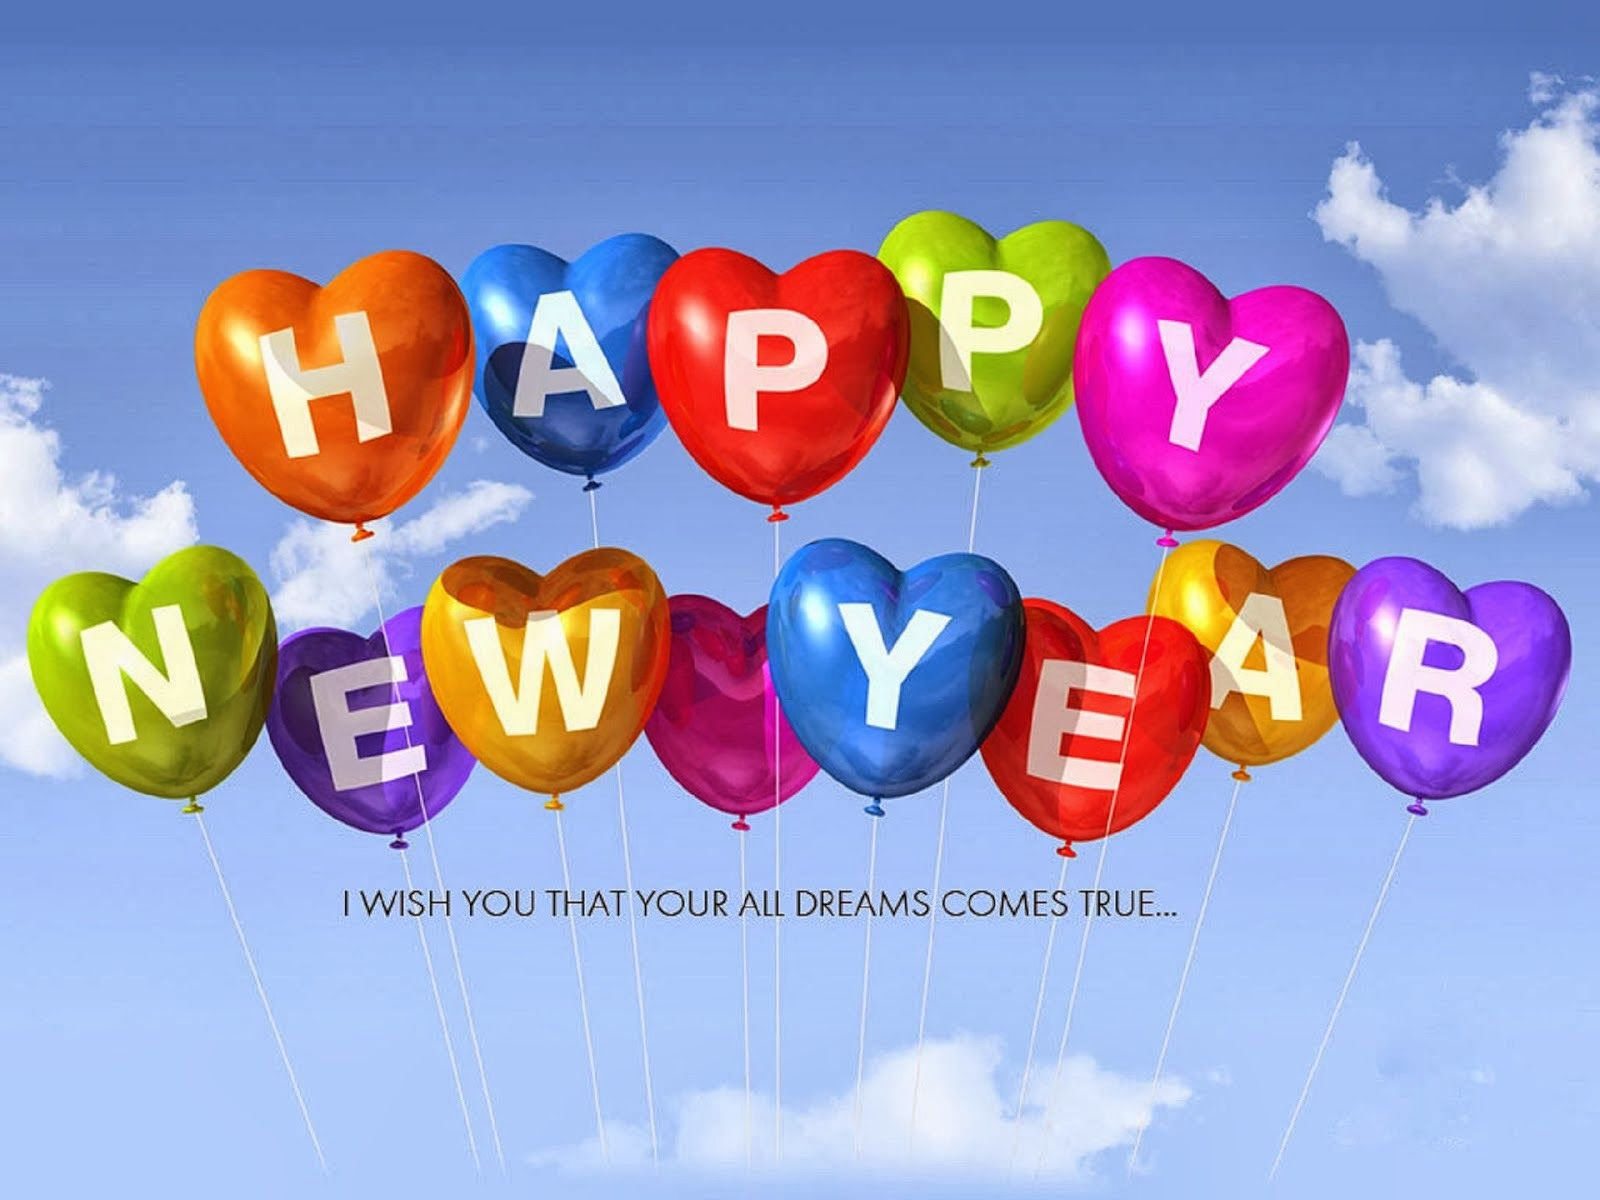 You can download happy new year hd images 2015 herehappy new year you can download happy new year hd images 2015 herehappy new year hd images 2015 available in high resolution and high definition size m4hsunfo